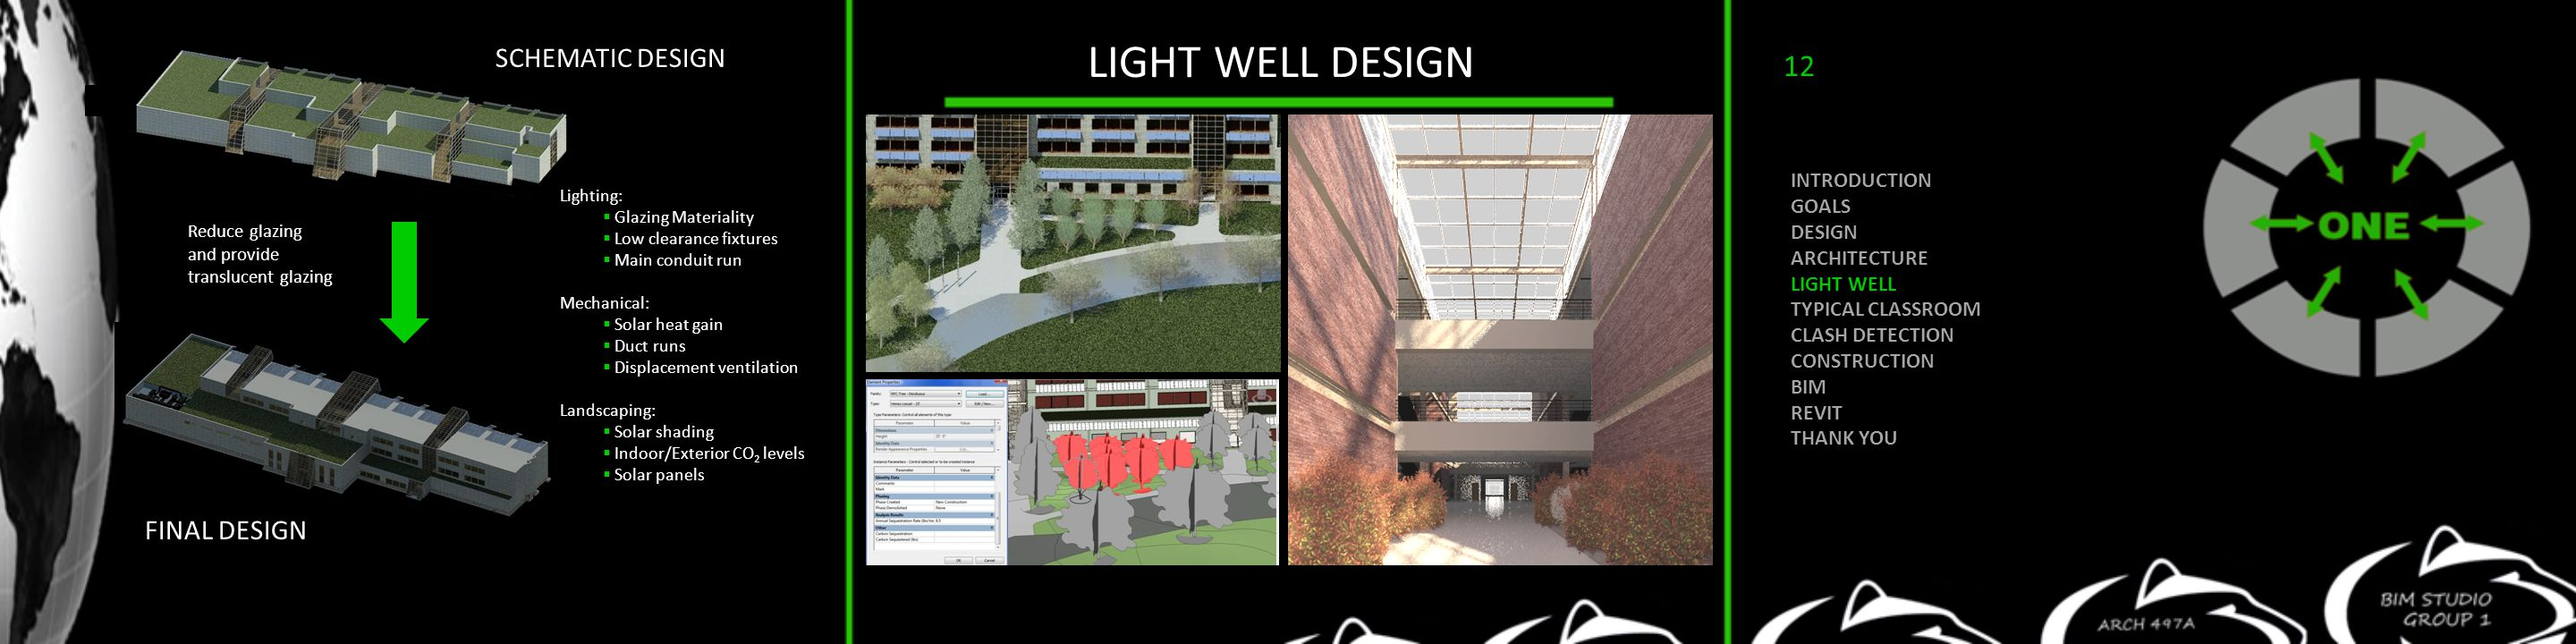 LIGHT WELL DESIGN Reduce glazing and provide translucent glazing FINAL DESIGN SCHEMATIC DESIGN Lighting:  Glazing Materiality  Low clearance fixtures  Main conduit run Mechanical:  Solar heat gain  Duct runs  Displacement ventilation Landscaping:  Solar shading  Indoor/Exterior CO 2 levels  Solar panels INTRODUCTION GOALS DESIGN ARCHITECTURE LIGHT WELL TYPICAL CLASSROOM CLASH DETECTION CONSTRUCTION BIM REVIT THANK YOU 12